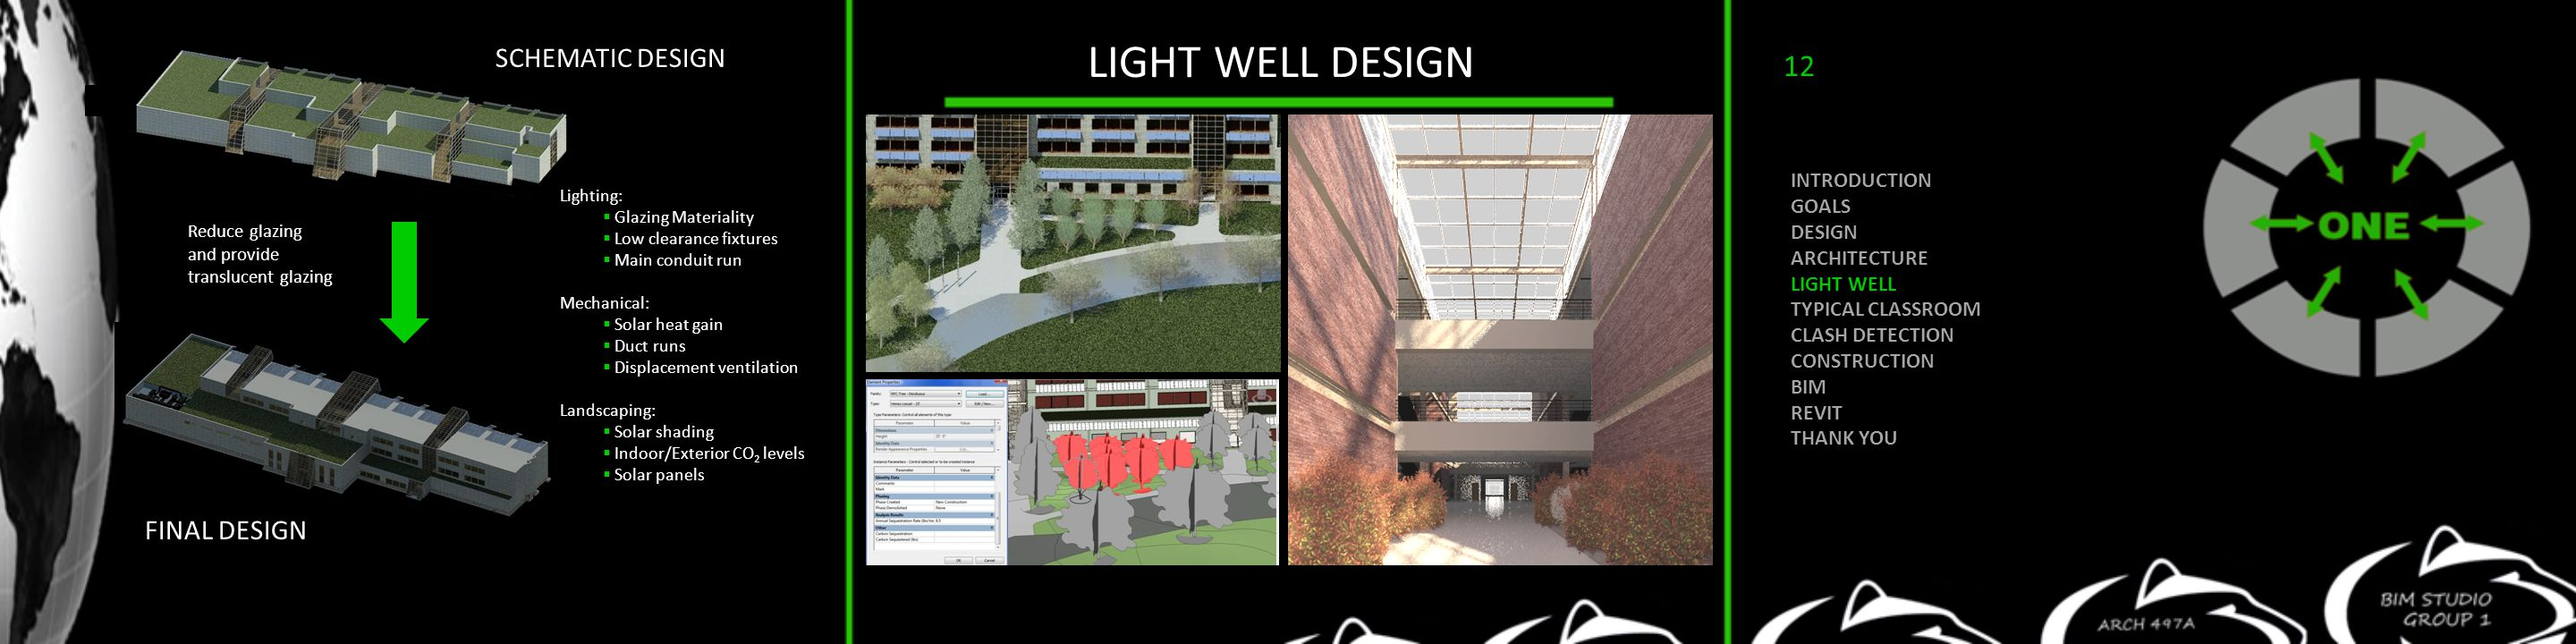 LIGHT WELL DESIGN Reduce glazing and provide translucent glazing FINAL DESIGN SCHEMATIC DESIGN Lighting:  Glazing Materiality  Low clearance fixtures  Main conduit run Mechanical:  Solar heat gain  Duct runs  Displacement ventilation Landscaping:  Solar shading  Indoor/Exterior CO 2 levels  Solar panels INTRODUCTION GOALS DESIGN ARCHITECTURE LIGHT WELL TYPICAL CLASSROOM CLASH DETECTION CONSTRUCTION BIM REVIT THANK YOU 12